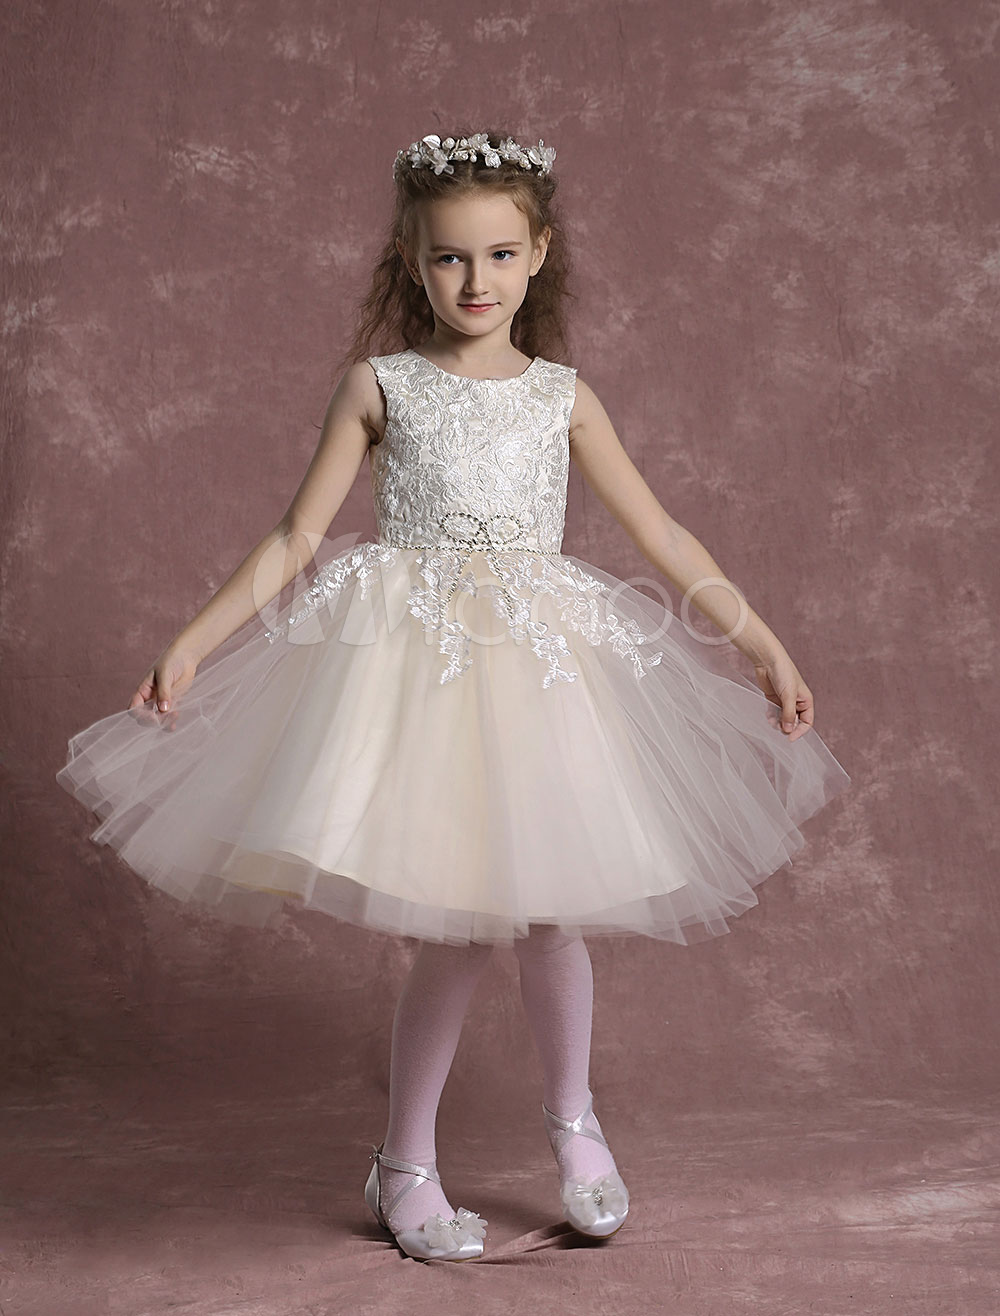 Champagne Flower Girl Dresses Tulle Lace Pageant Dresses Toddler's Zipper Knee Length A Line Formal Dresses